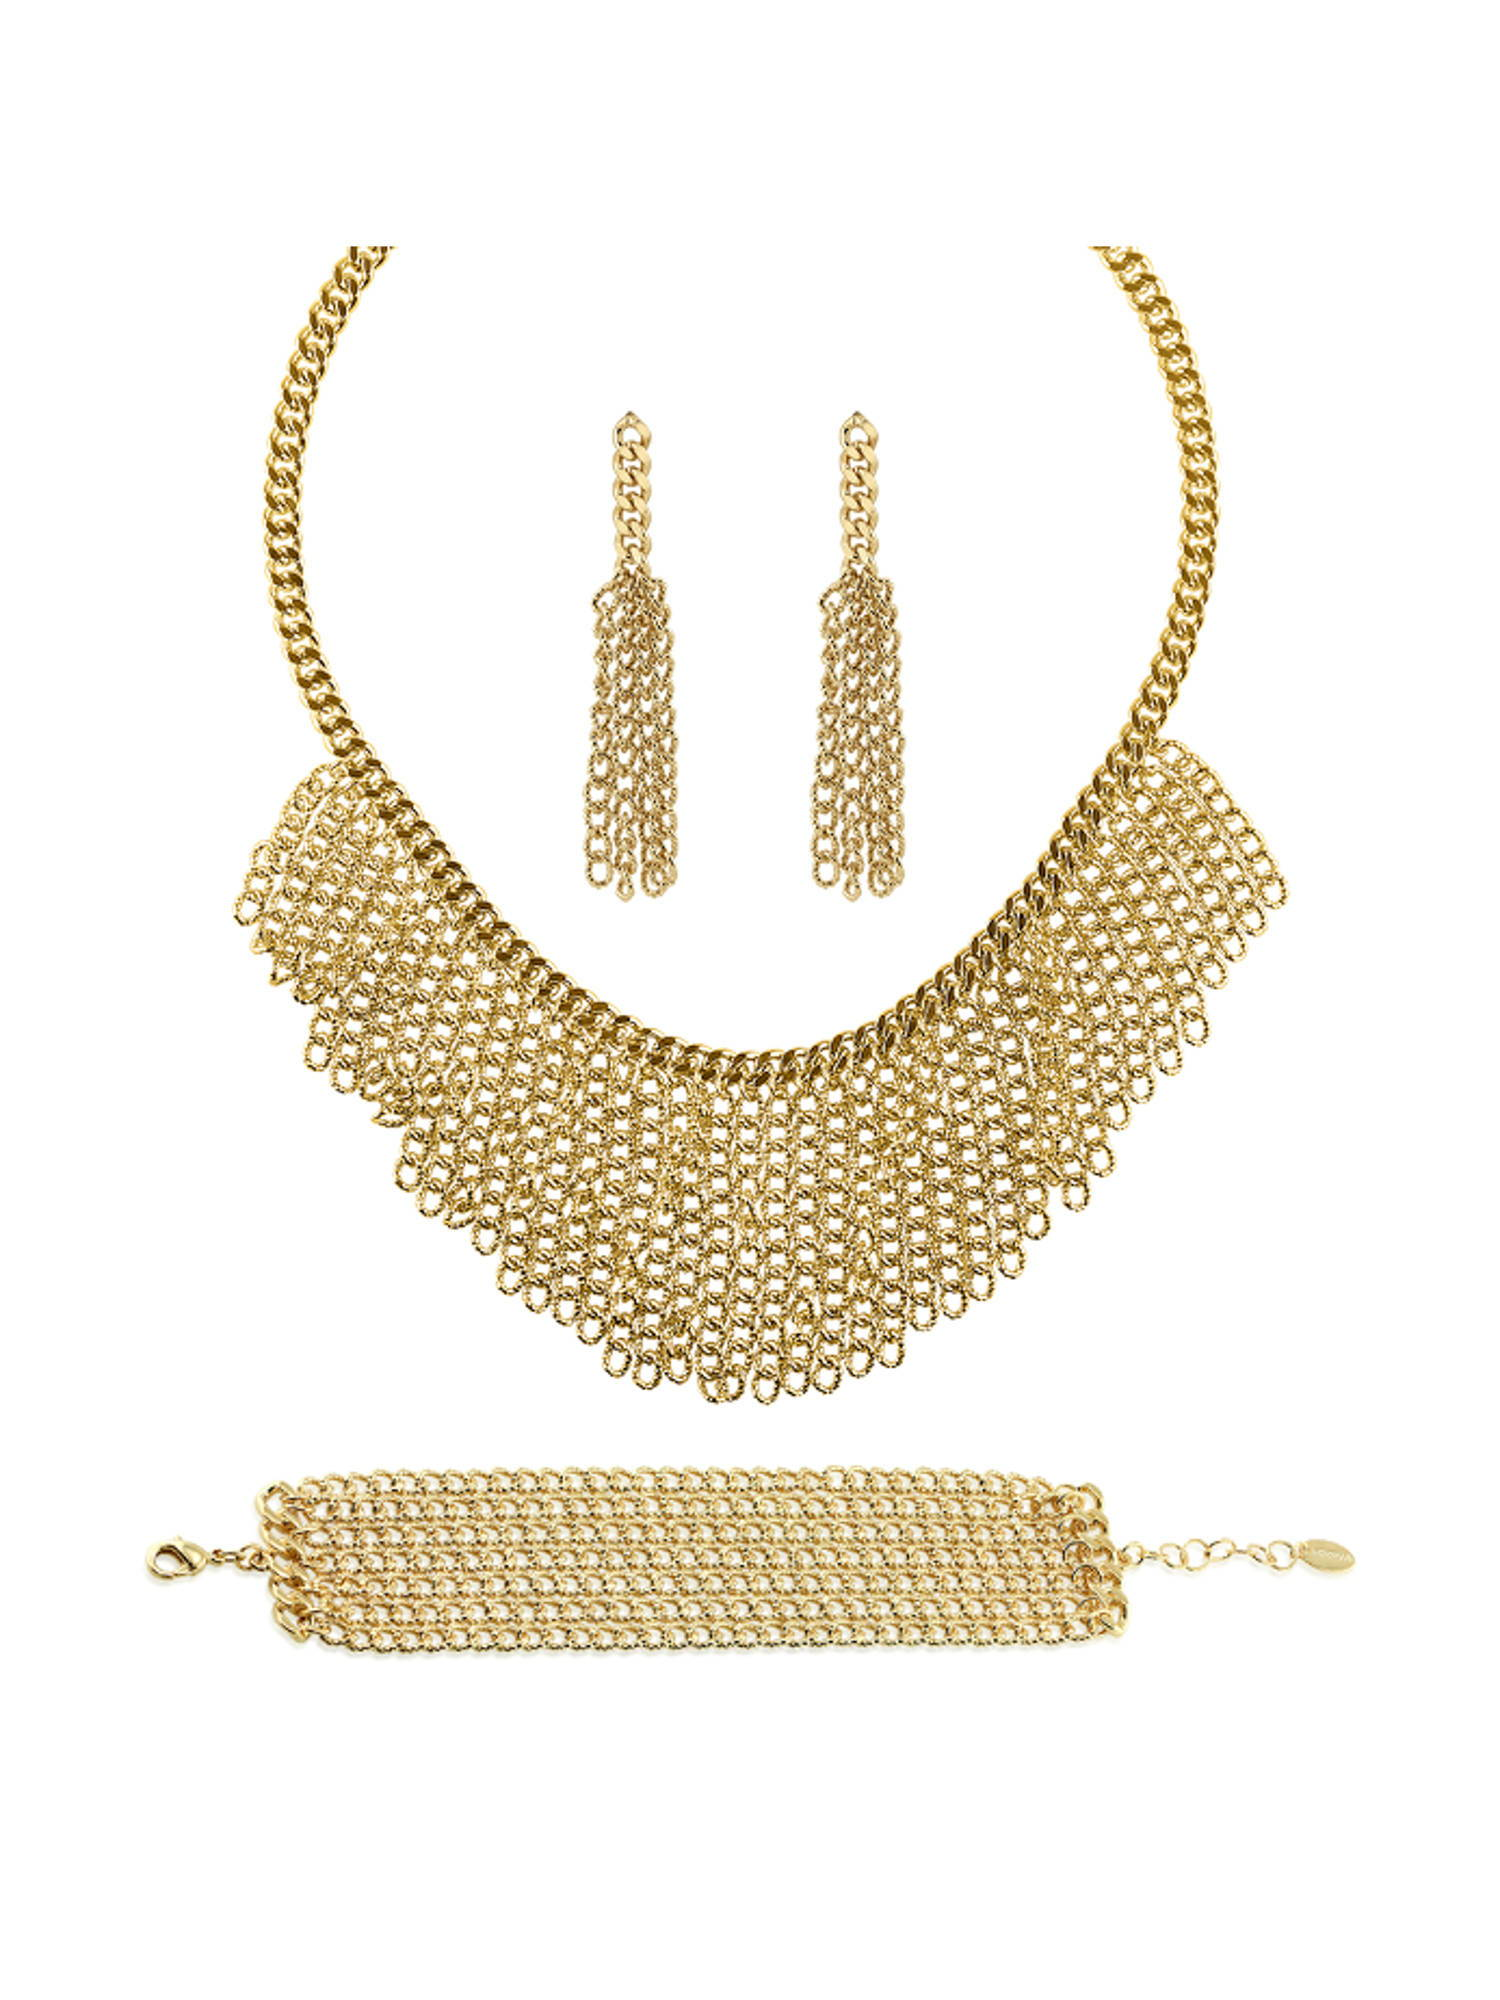 BERRICLE Gold Flashed Base Metal Fringe Fashion Necklace Earrings and Bracelet Set by BERRICLE